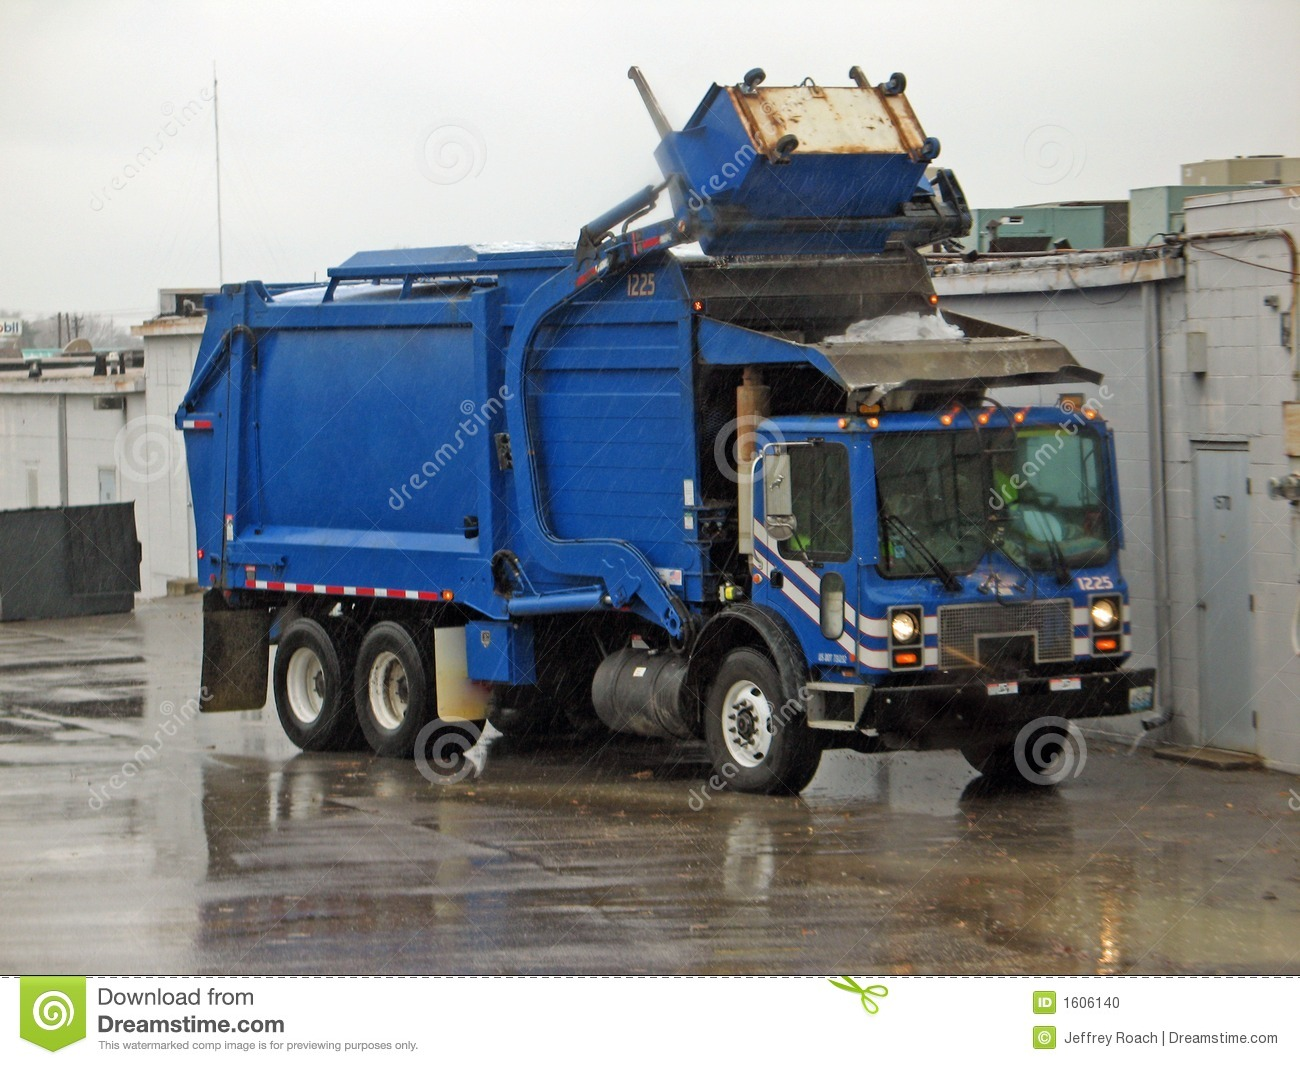 Blue garbage truck collecting trash in the rain.